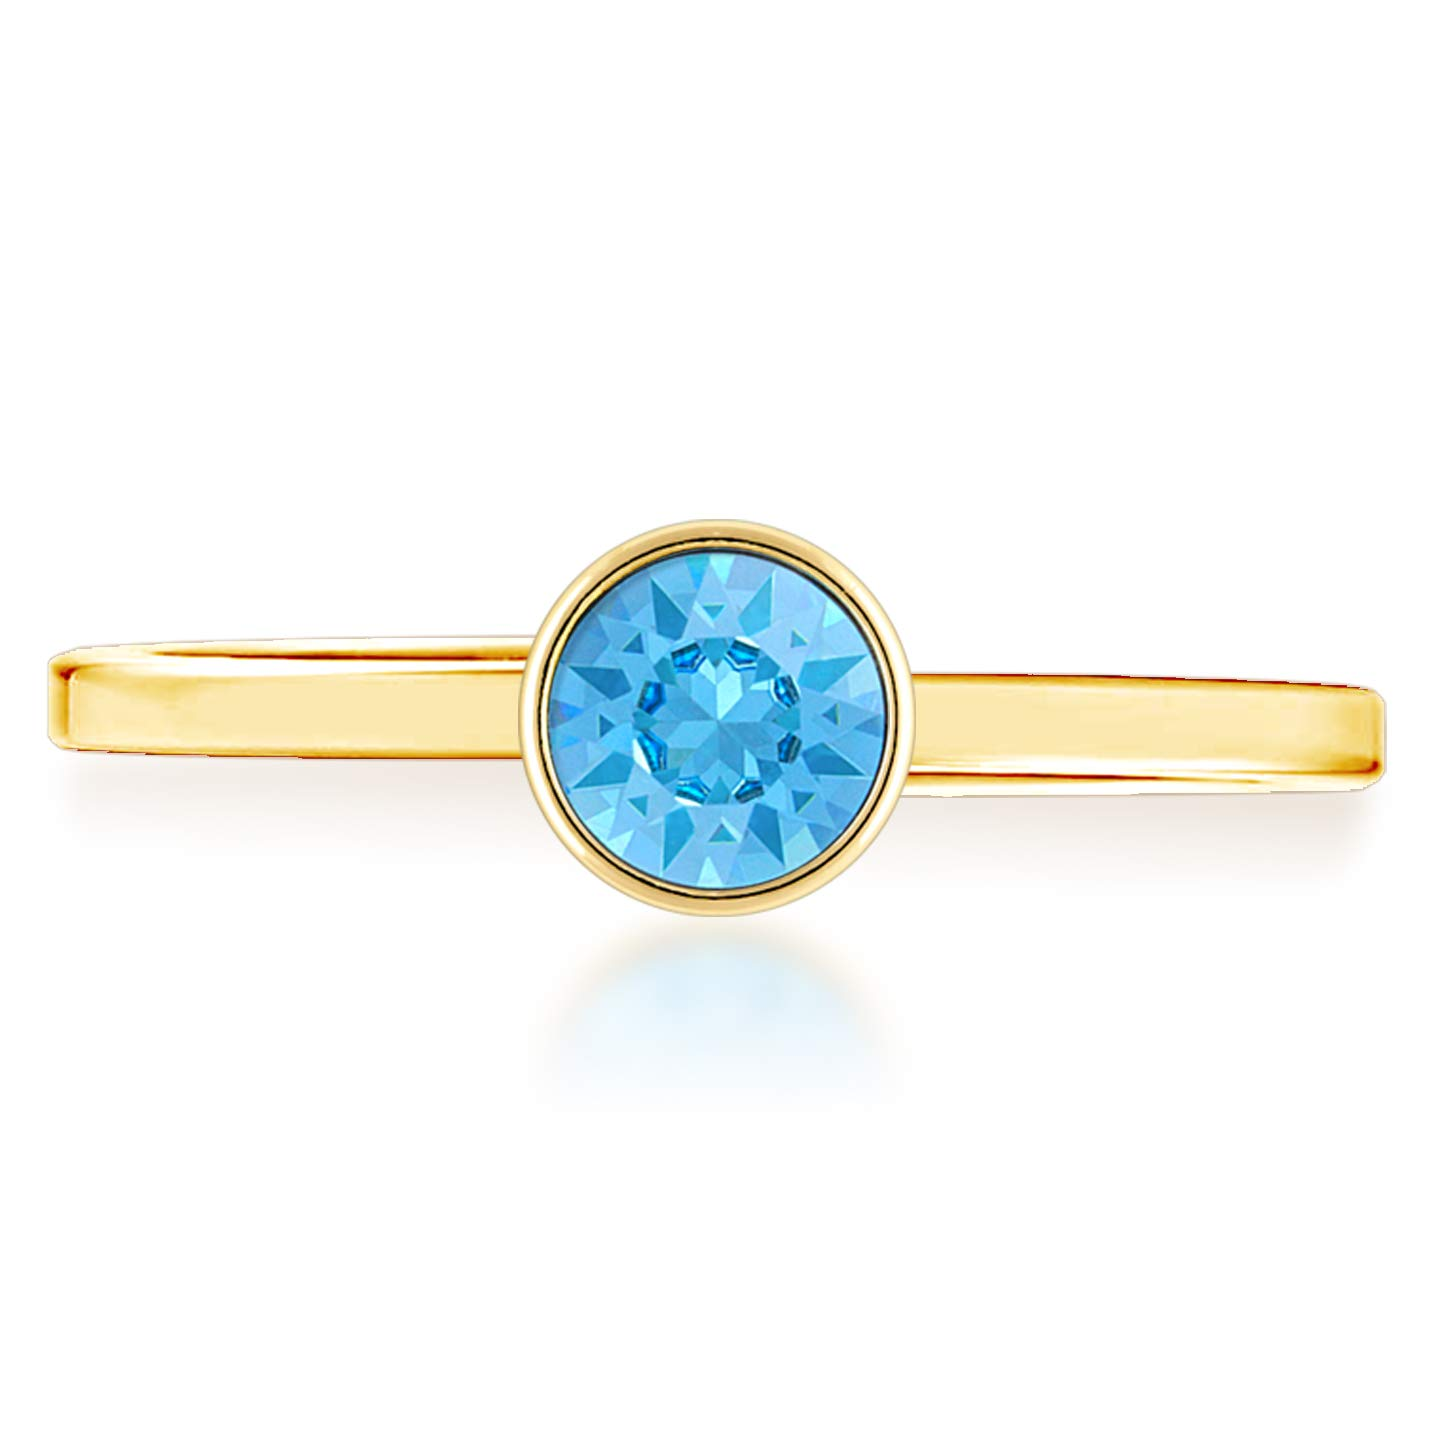 Ed Heart Adjustable Ring with Blue Aquamarine Round Crystals from Swarovski Gold Plated